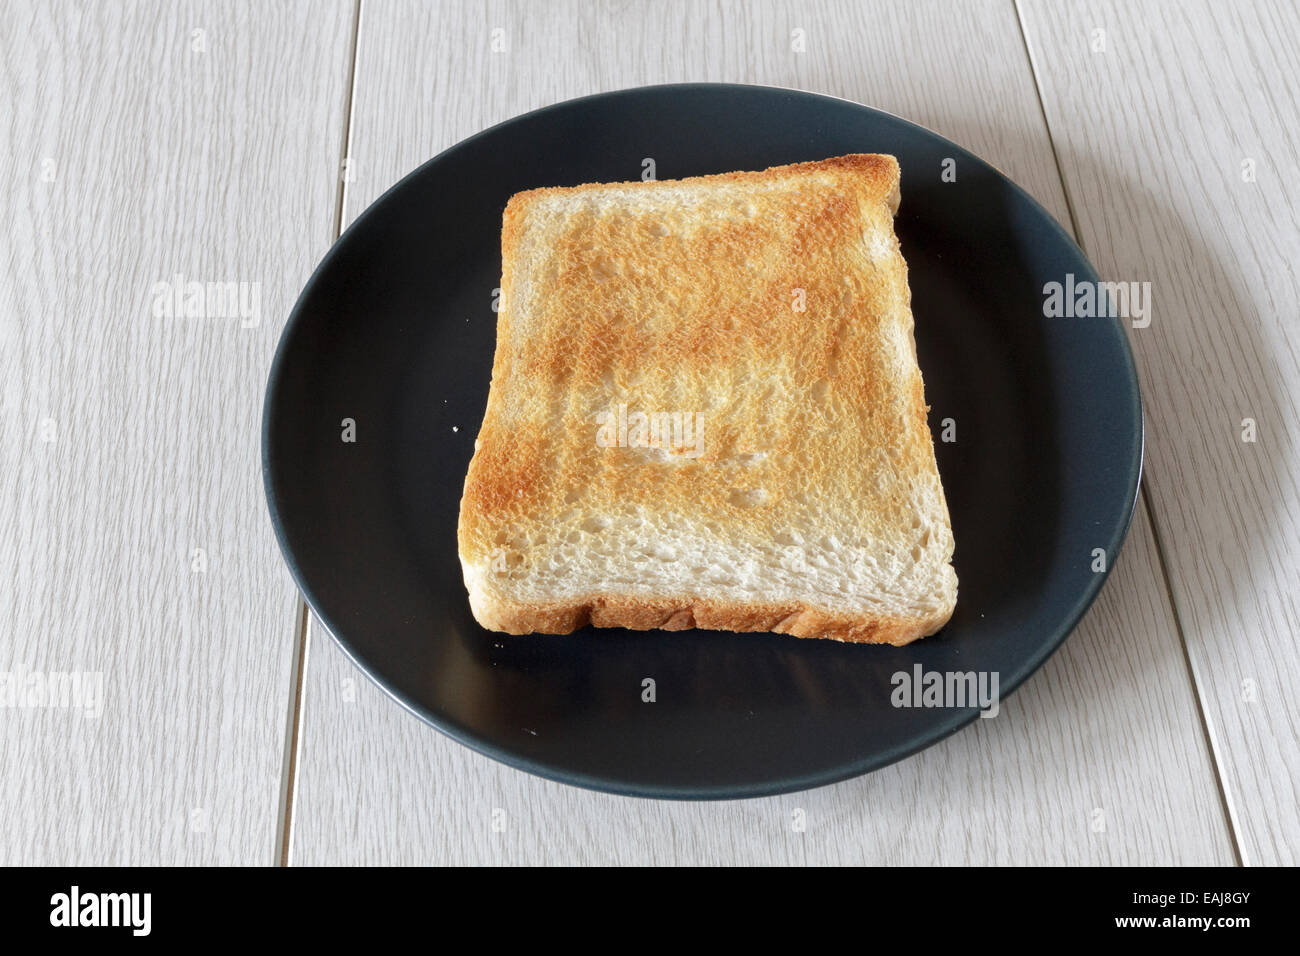 Piece of dry toast on a plate - Stock Image